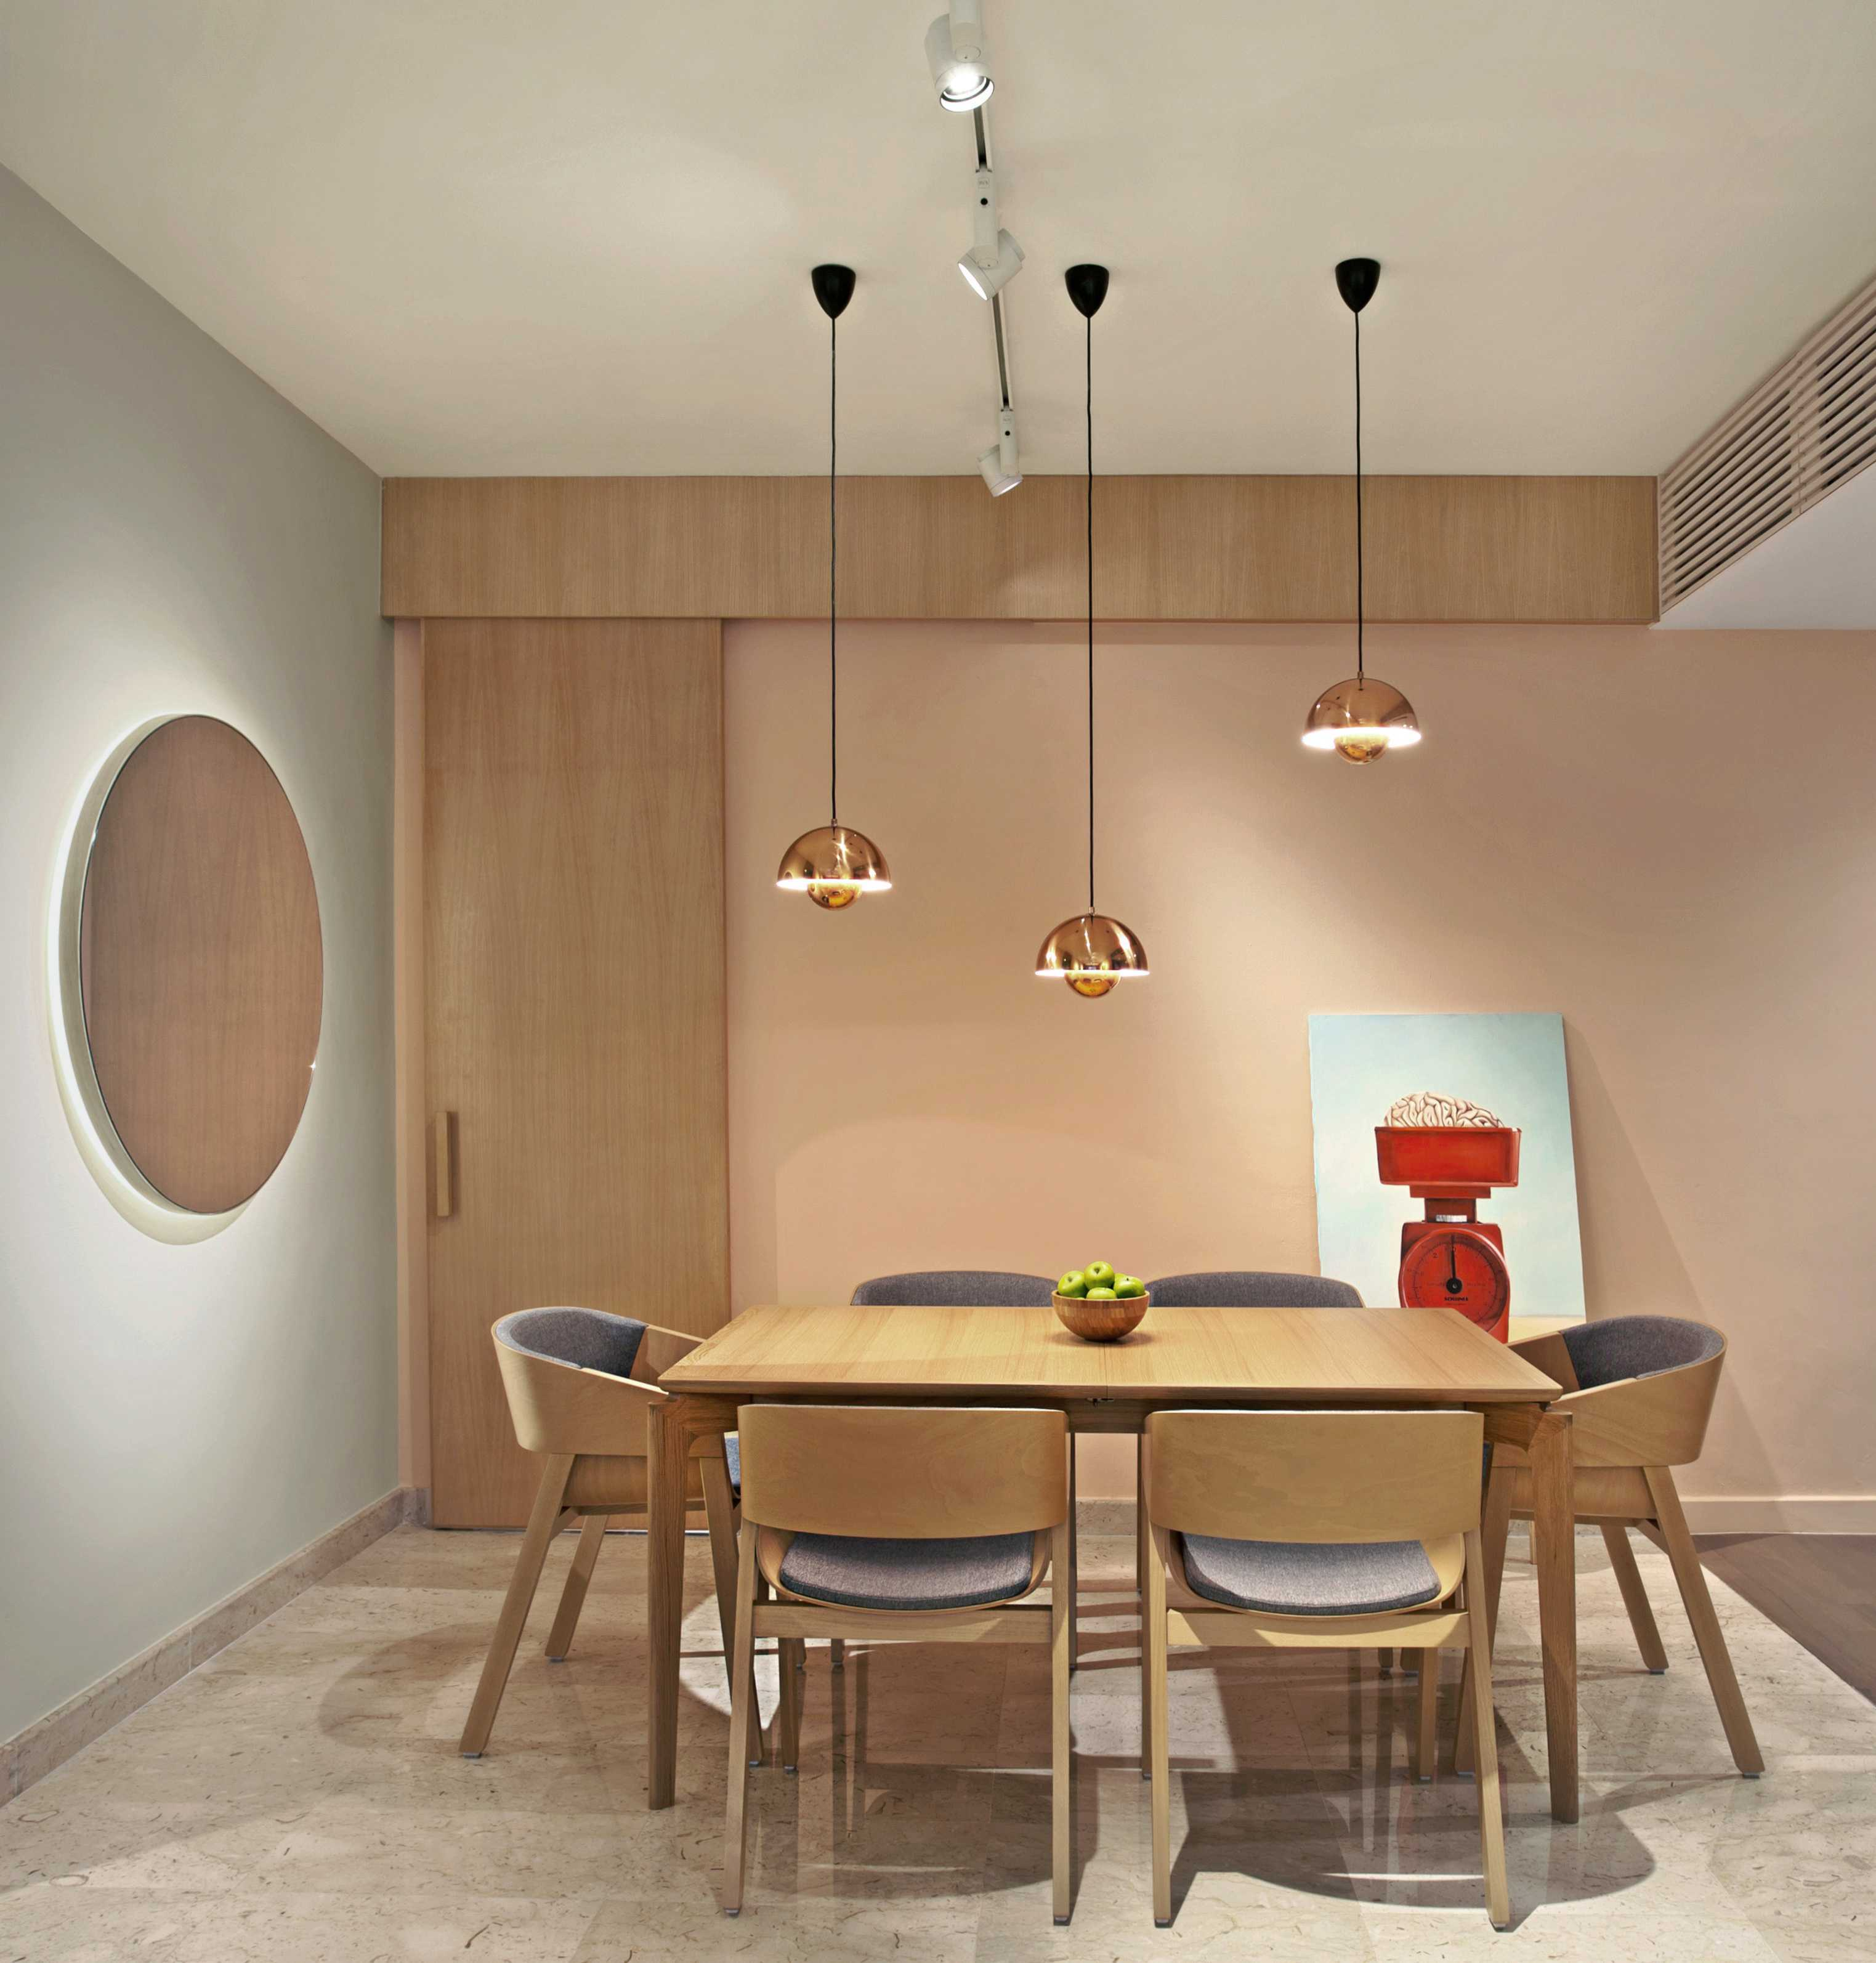 Studio Dinding Project A Residence Indonesia  122615-The-Anchorage02 Skandinavia  34524